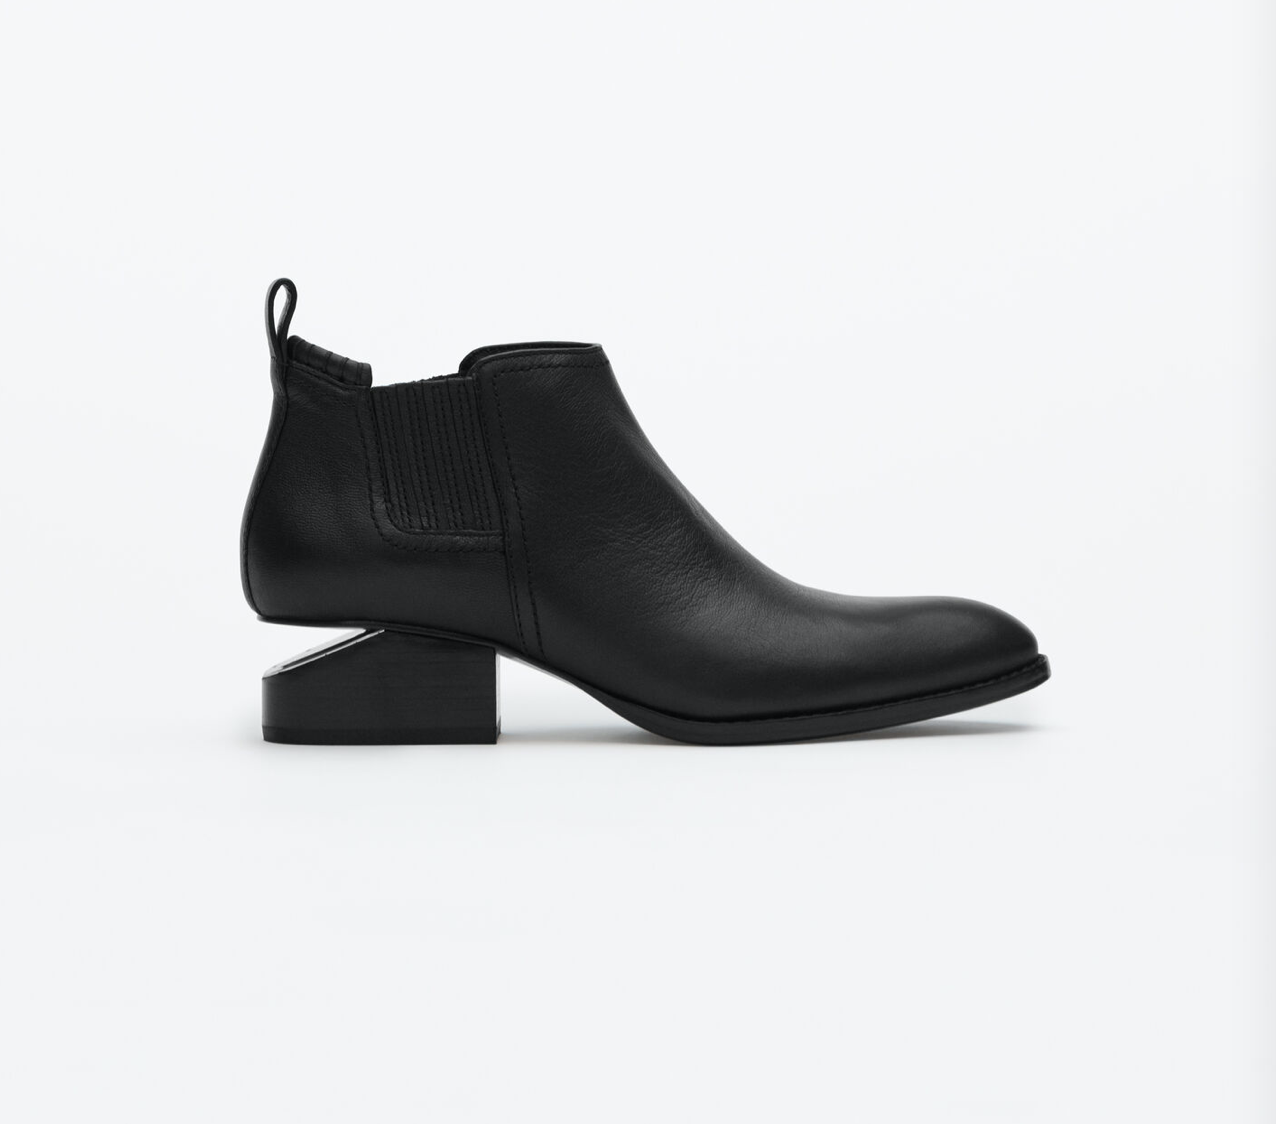 Alexander Wang: Up to 40% off sale styles